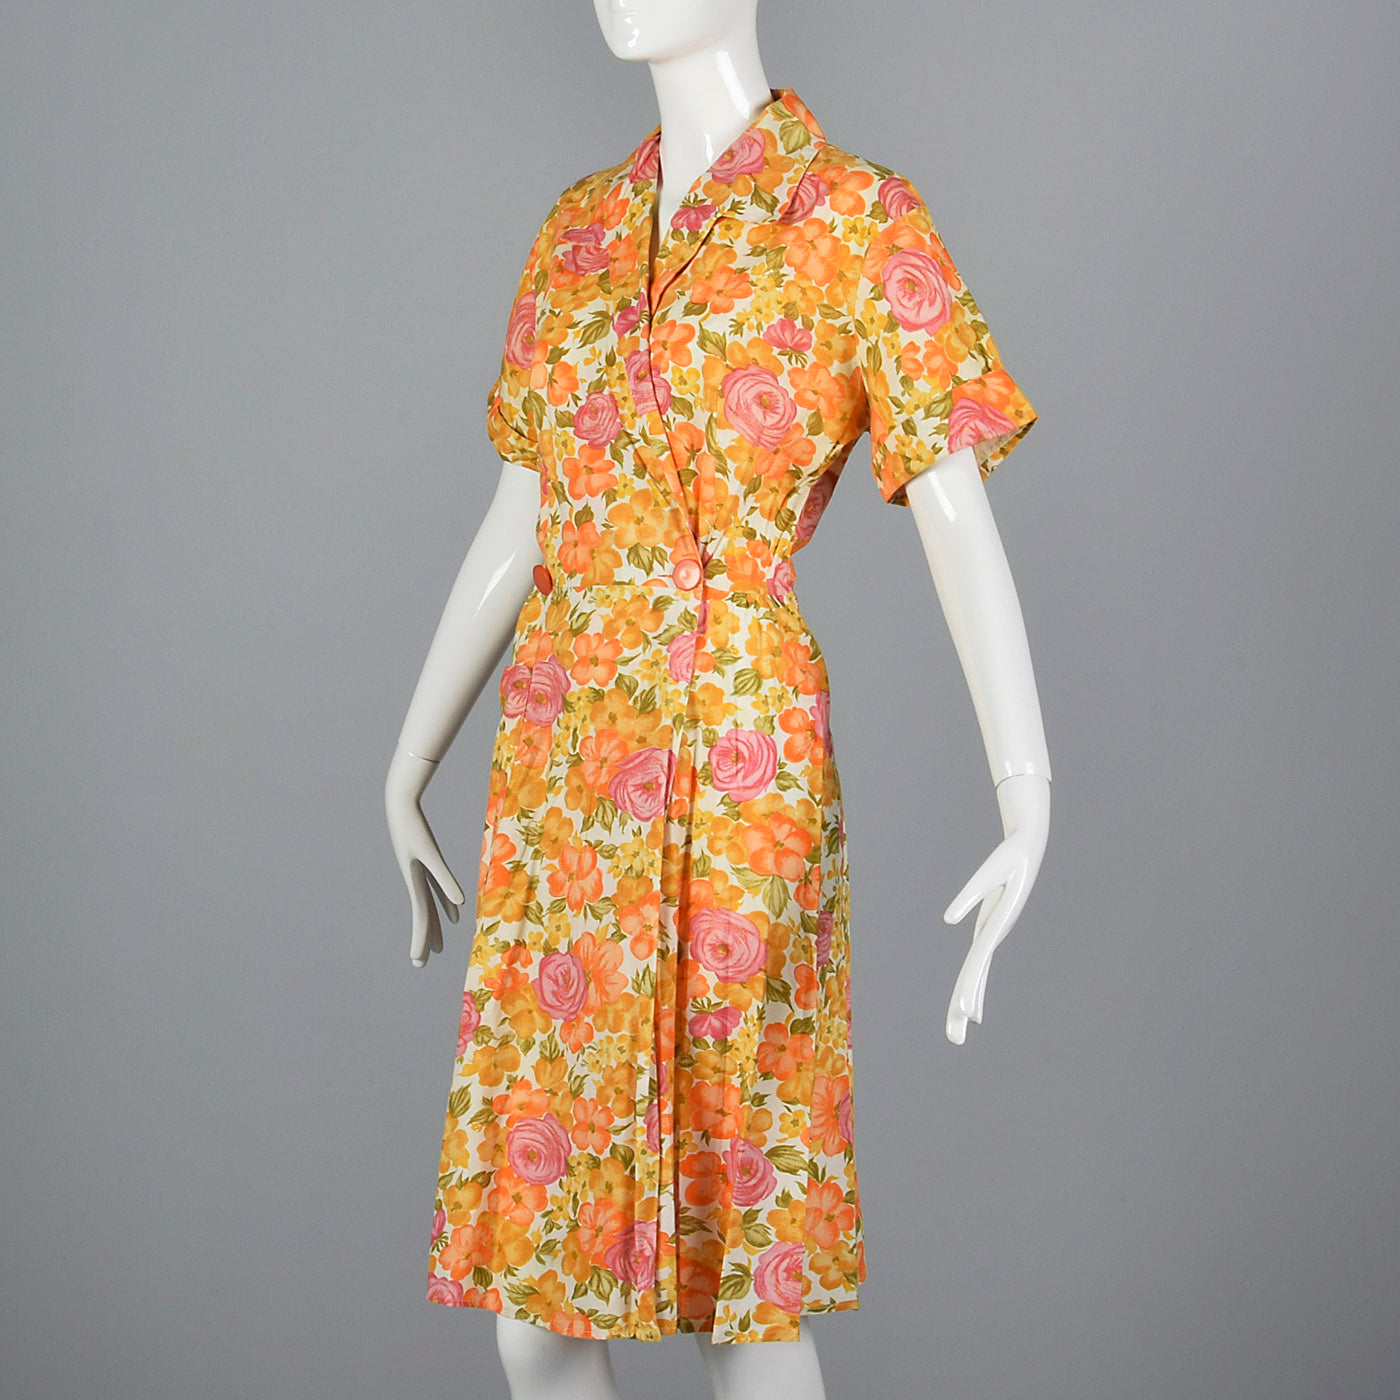 1960s Orange Floral Cotton Wrap Dress